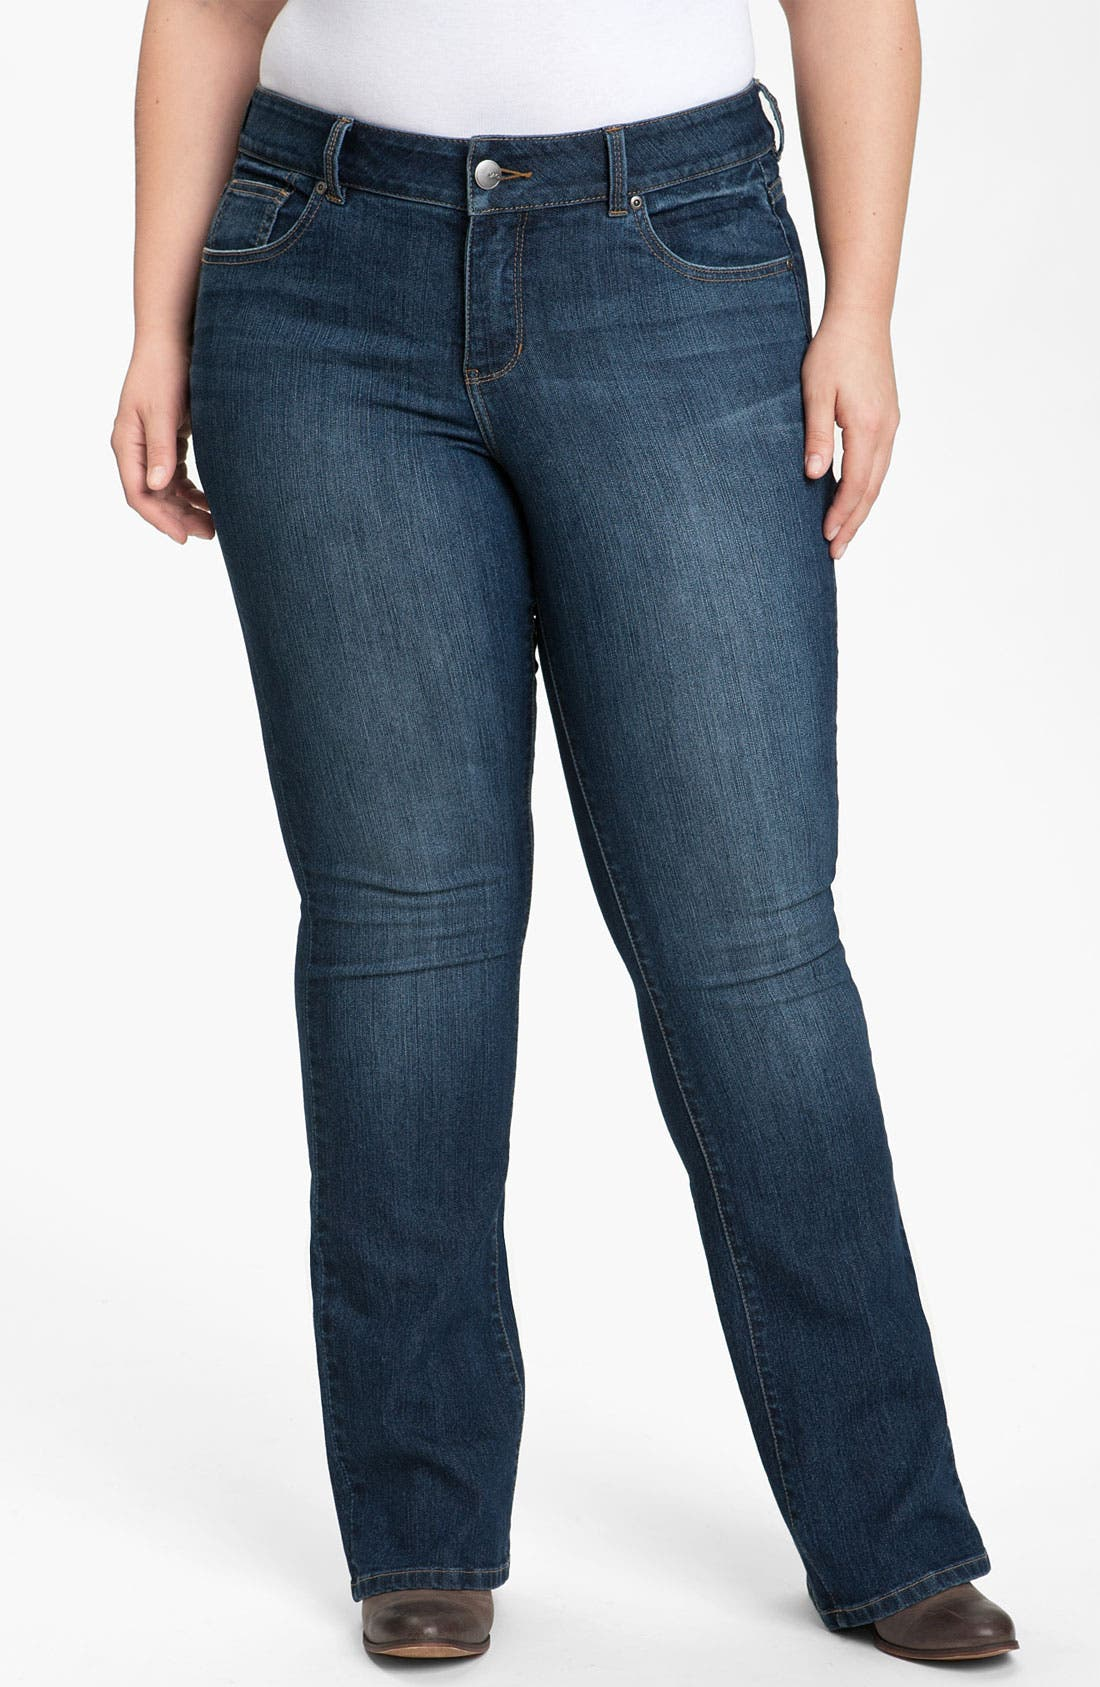 Alternate Image 1 Selected - Jag Jeans 'Lucy' Bootcut Jeans (Plus Size) (Online Only)